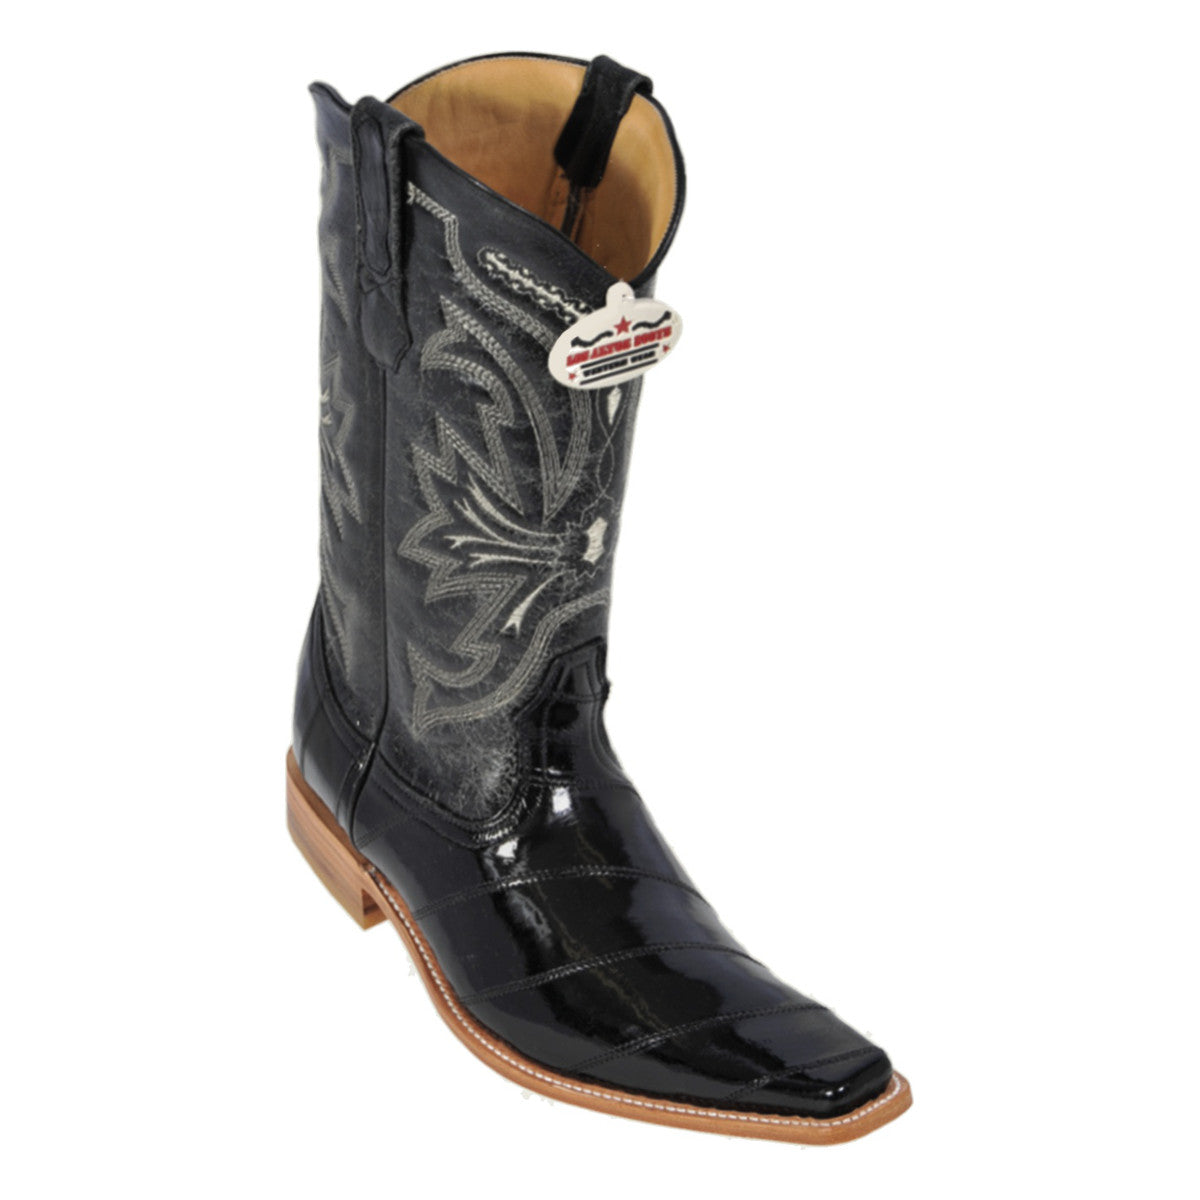 Los Altos Boots Narrow Square Toe EEL